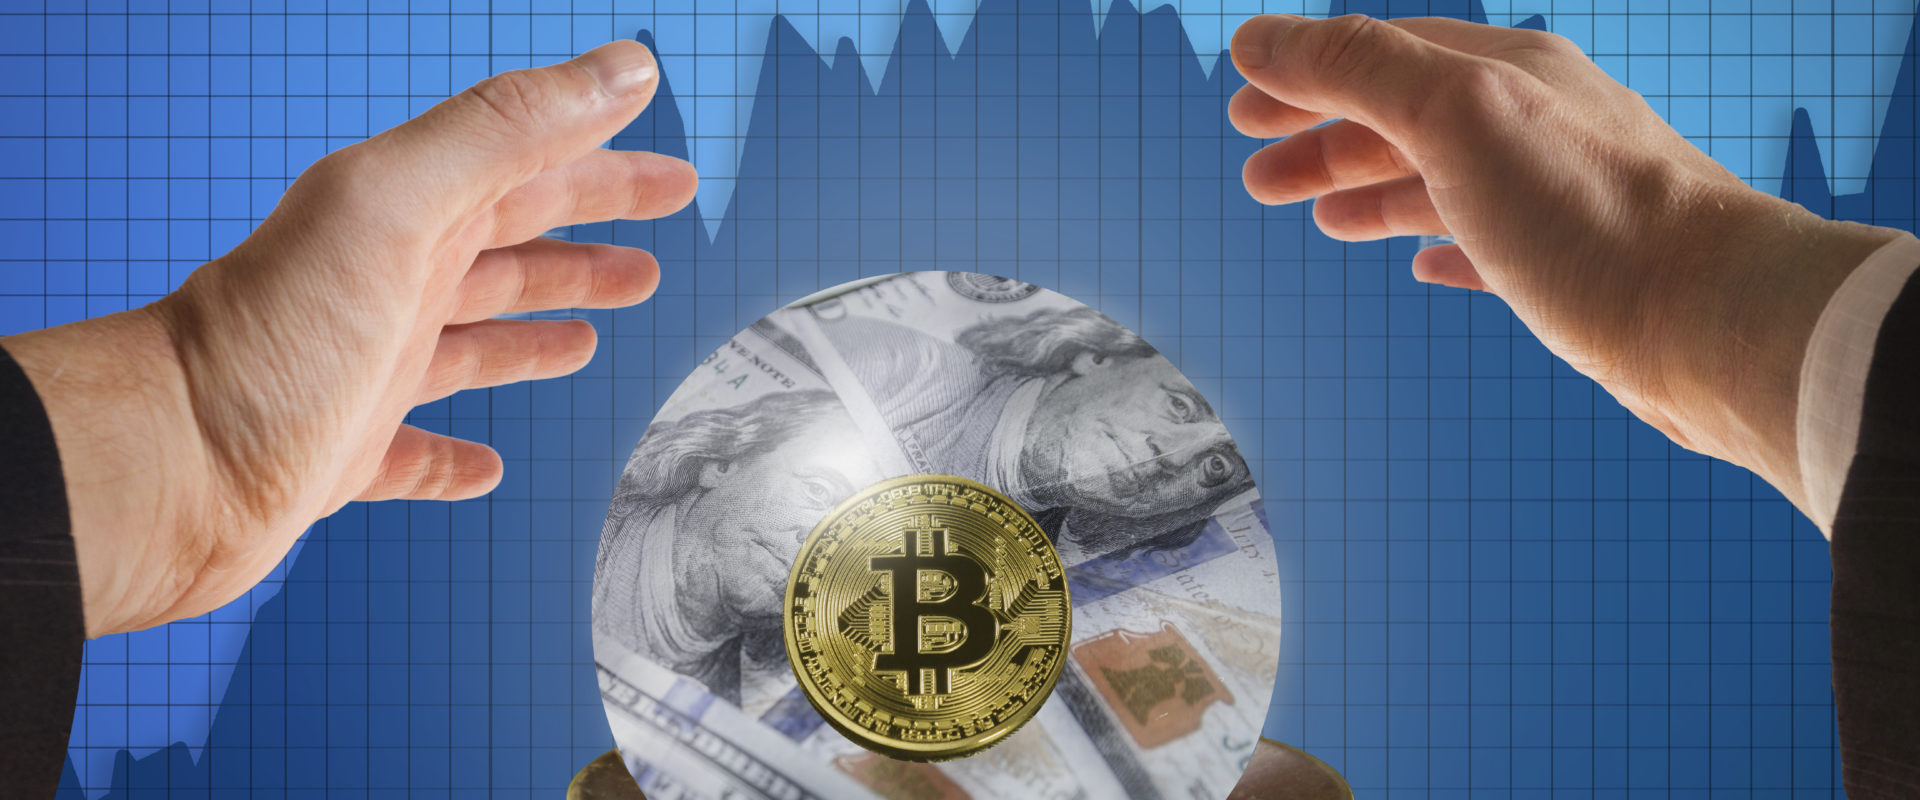 CME Futures Gaps Hint Bitcoin Price is Headed to $18,000 Or Higher